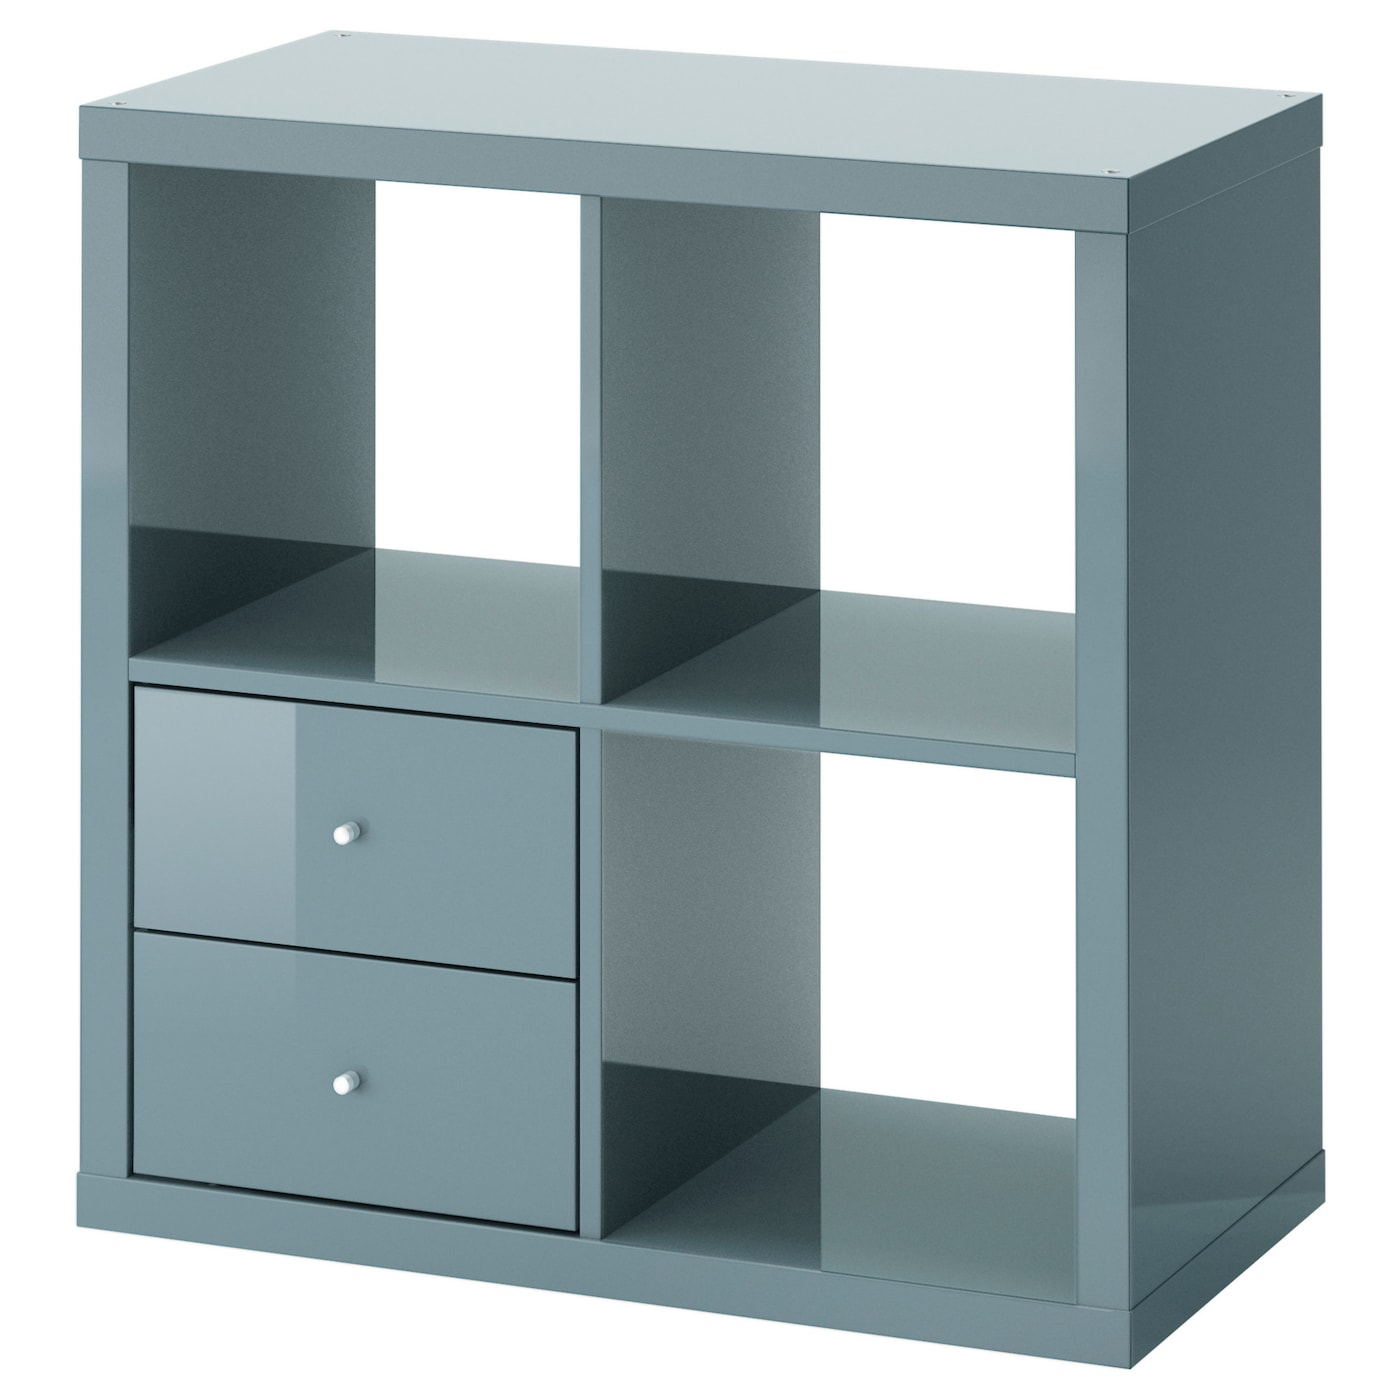 kallax tag re avec tiroirs gris turquoise brillant 77x77. Black Bedroom Furniture Sets. Home Design Ideas